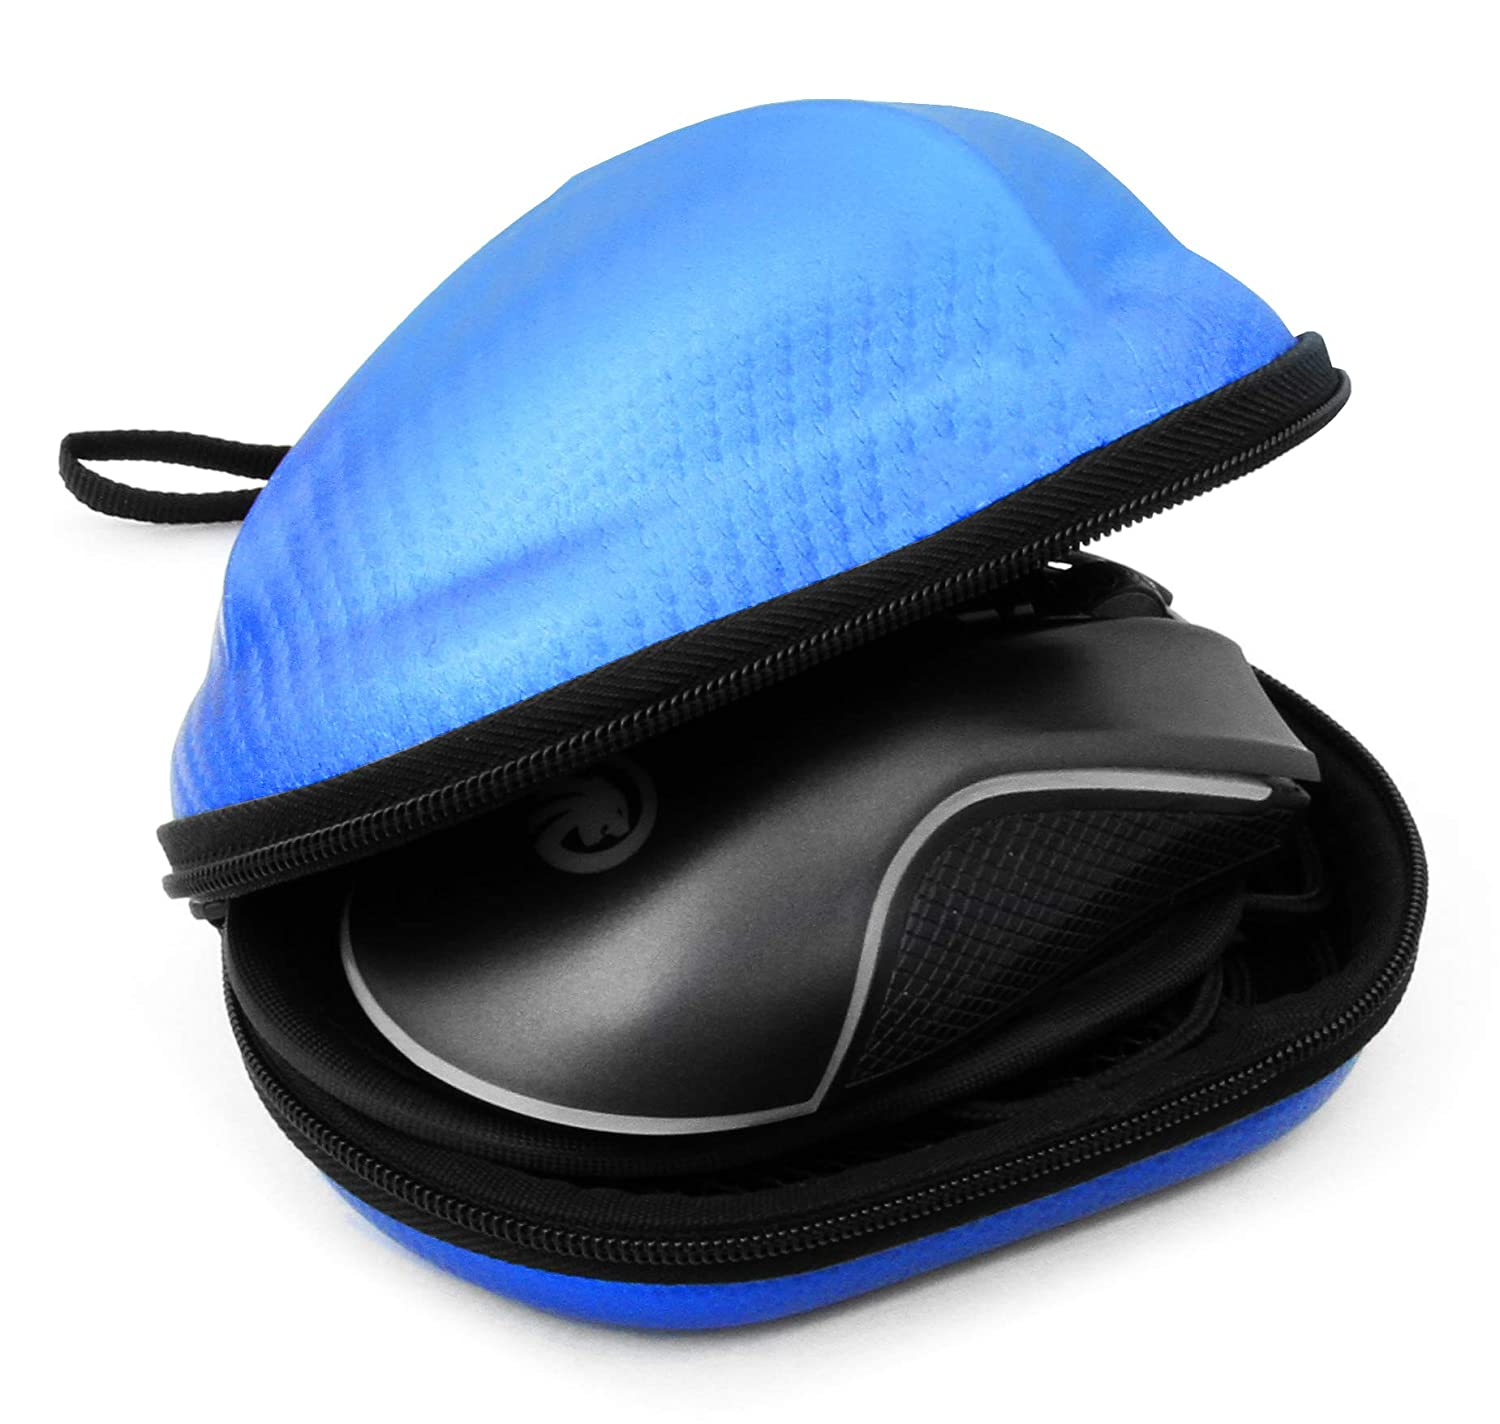 Amazon.com: CASEMATIX Carbon Fiber Blue Gaming Mouse Travel ...